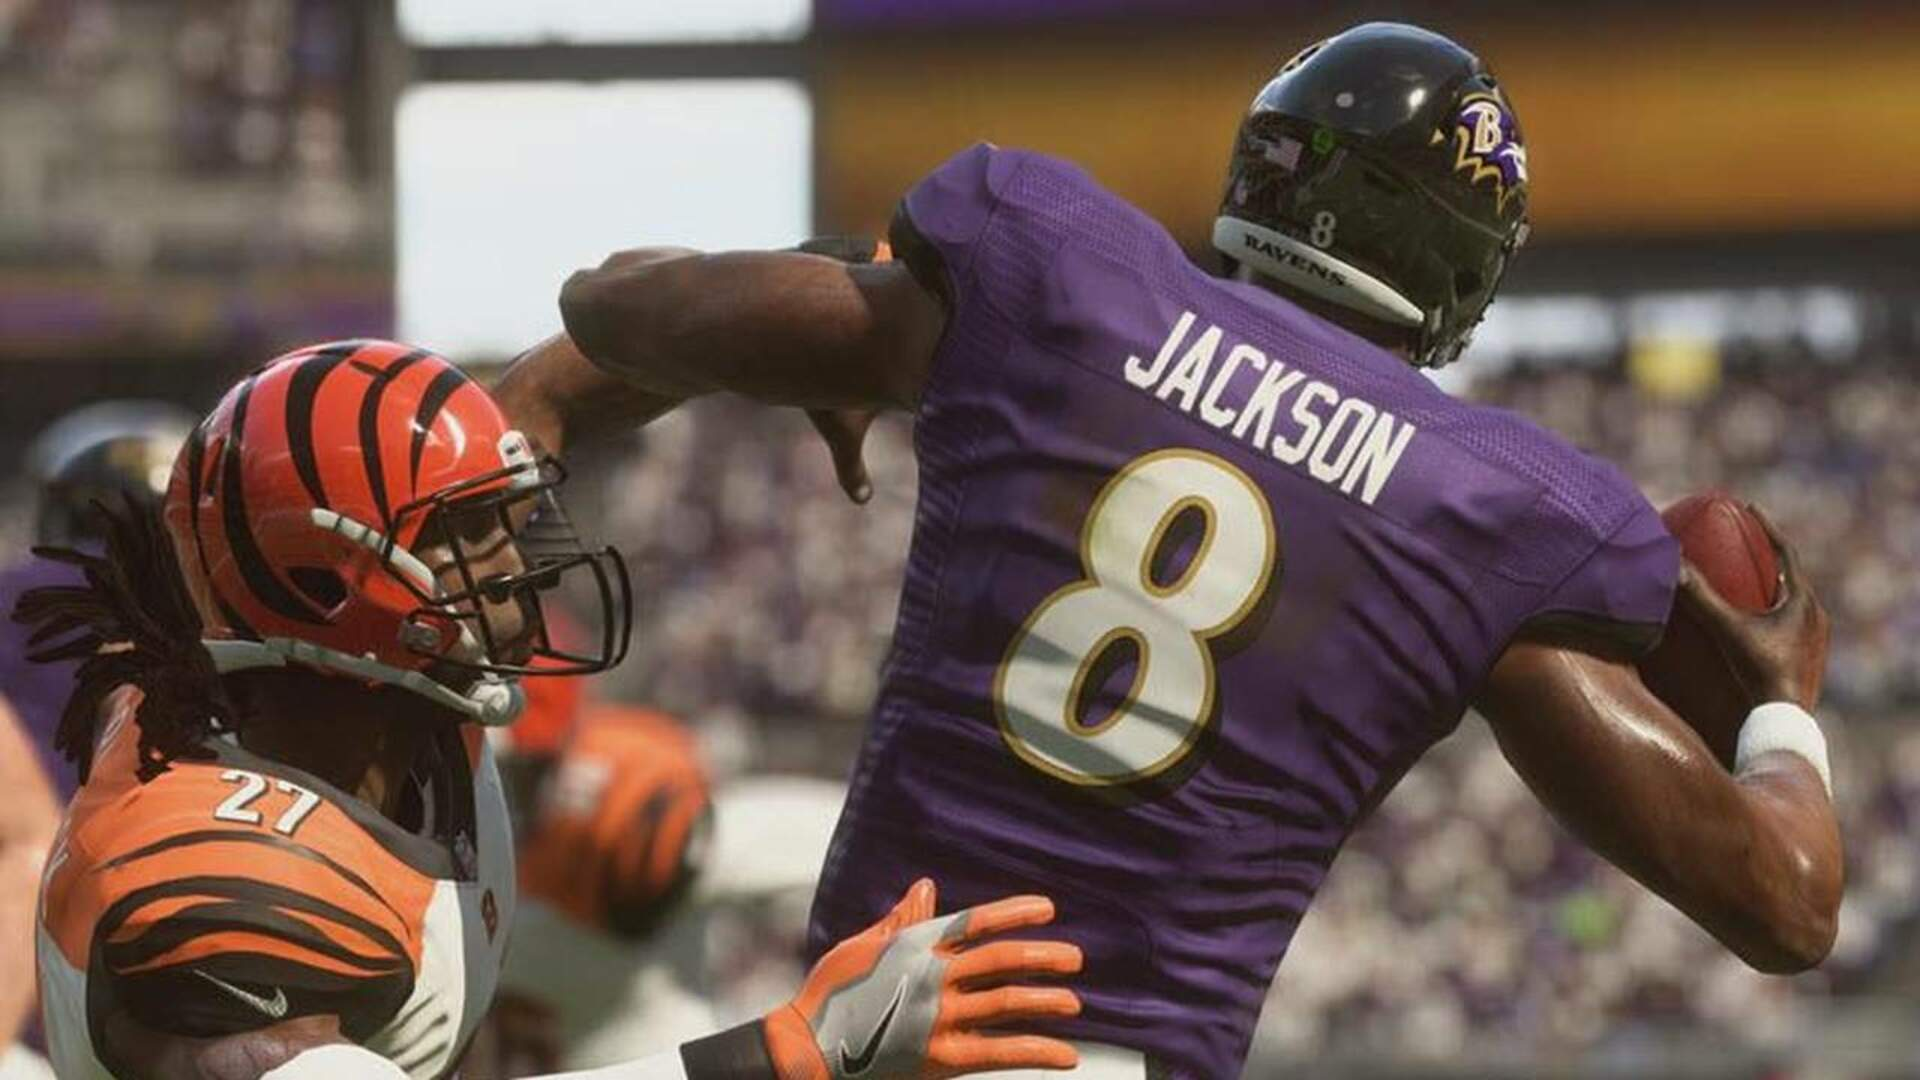 Madden 20 Glitch Takes Lamar Jackson to Near Michael Vick Levels of Unstoppability